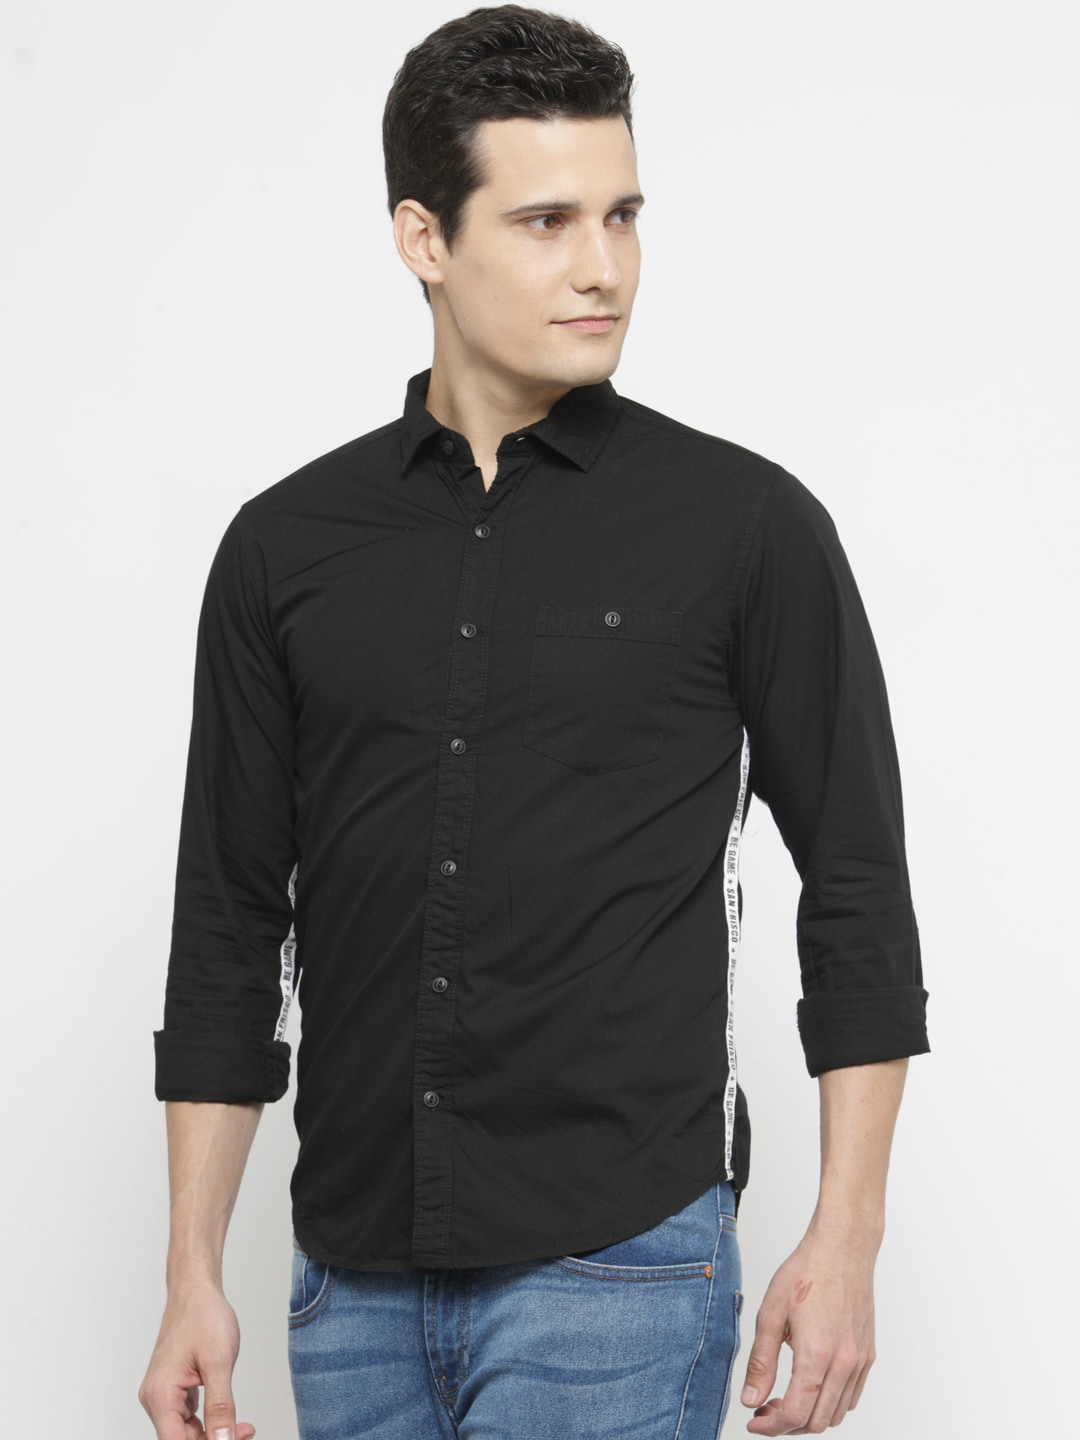 Black t shirt and jeans - Sf Jeans By Pantaloons Shirts Buy Sf Jeans By Pantaloons Shirts Online In India